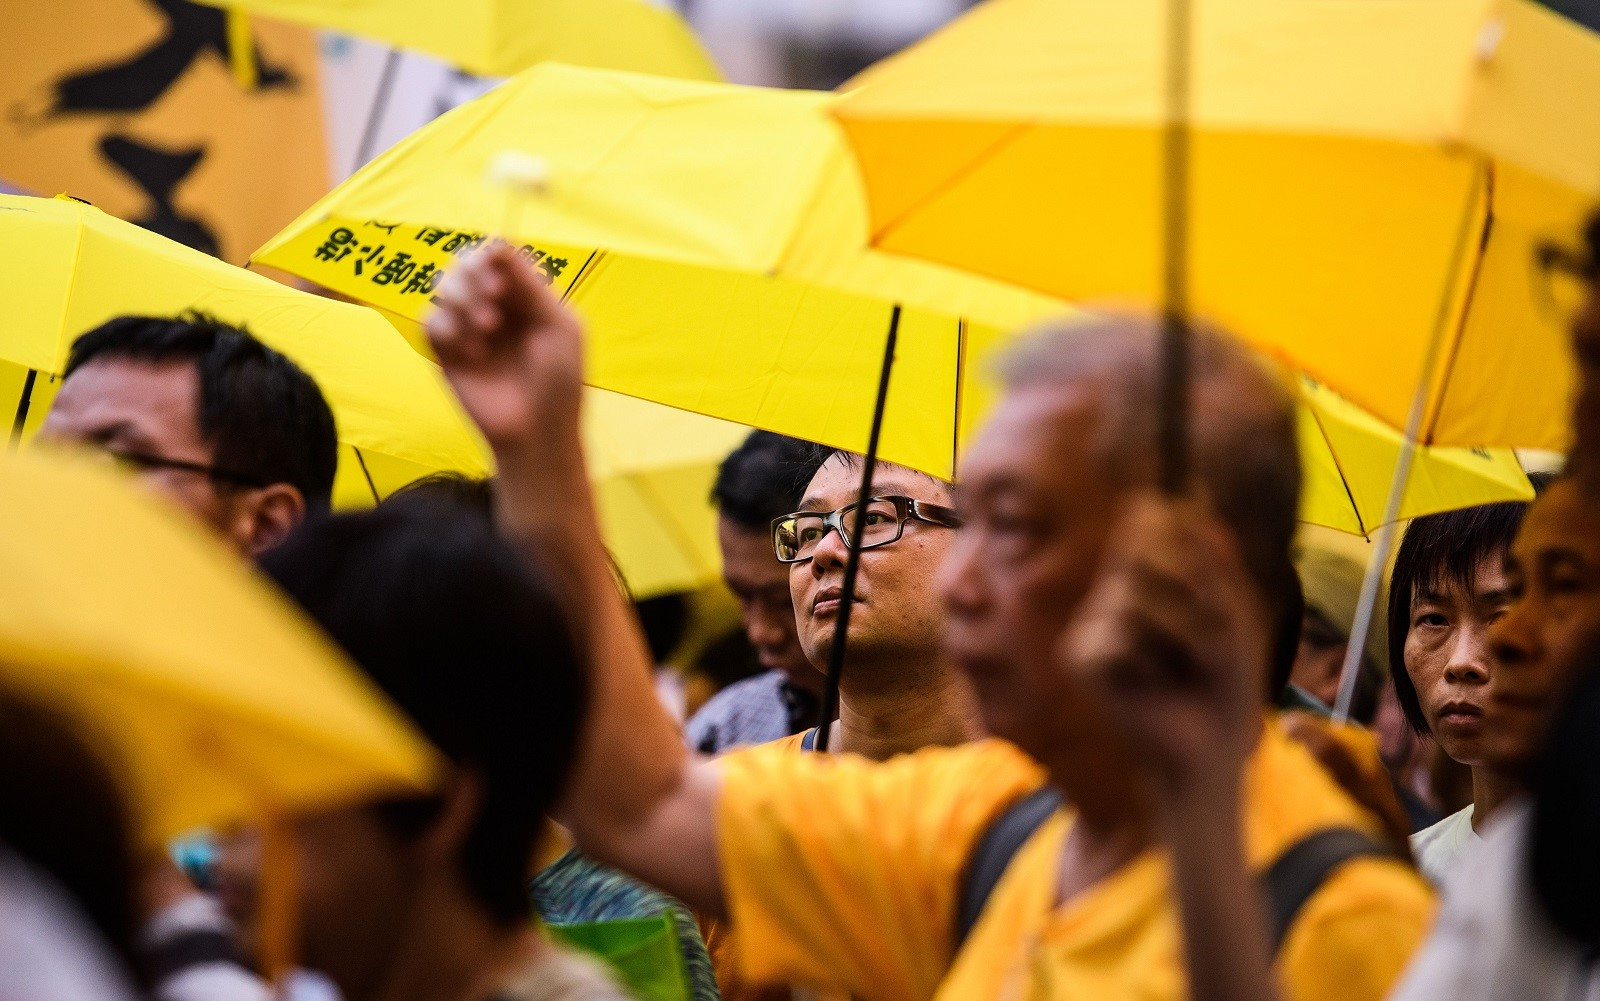 Activists use yellow umbrellas during a gathering outside the Hong Kong government headquarters to mark the fourth anniversary of mass pro-democracy rallies, known as the Umbrella Movement